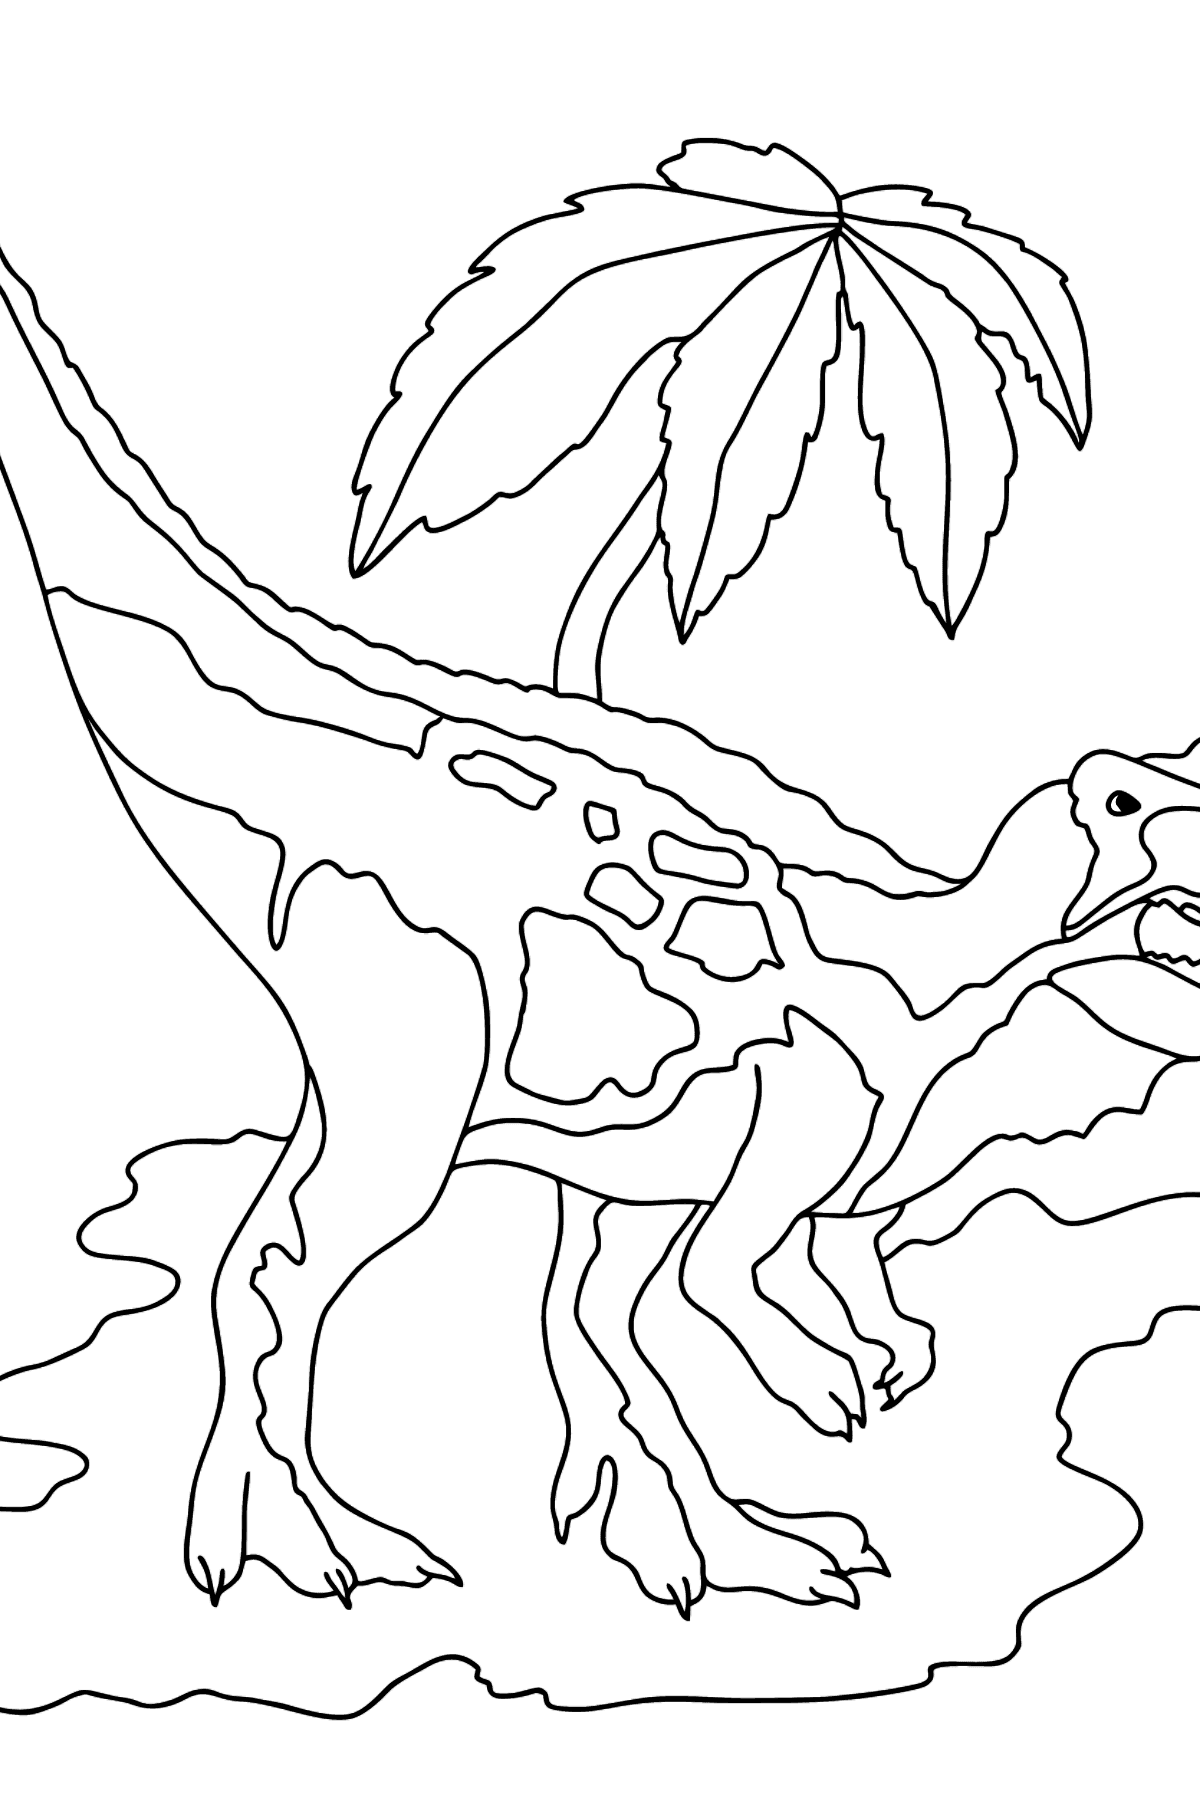 Coloring Page - Tyrannosaurus - The King of Dinosaurs - Coloring Pages for Kids